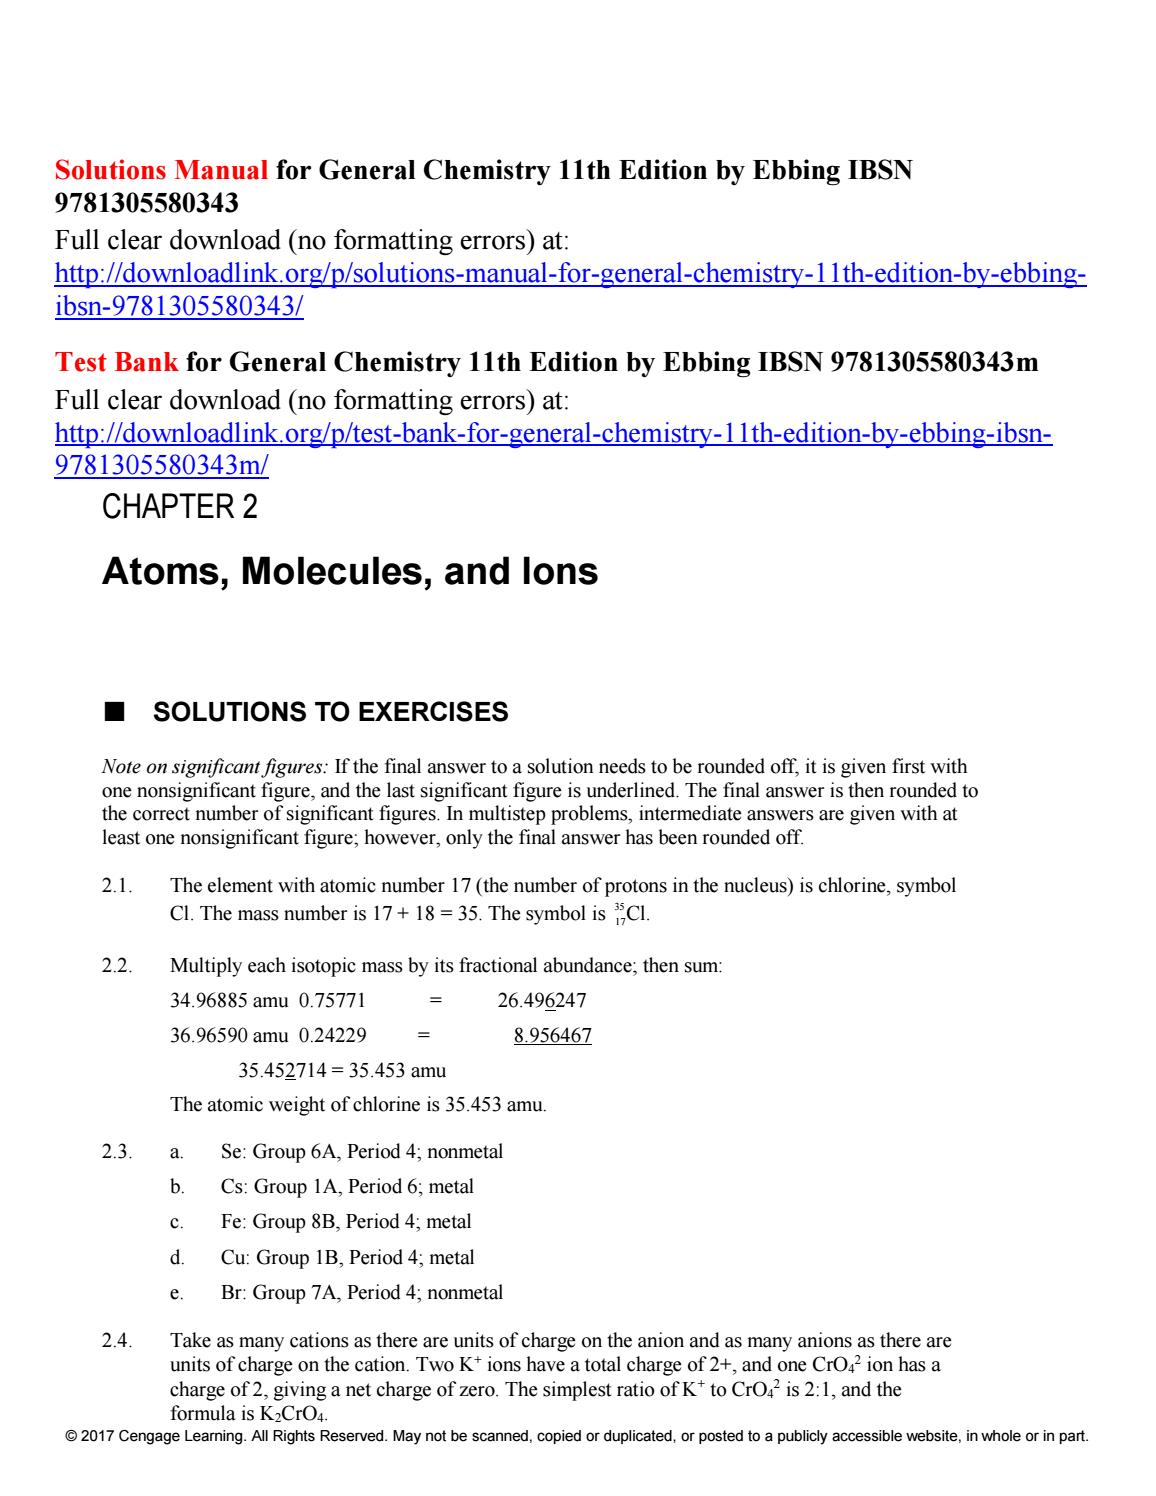 Solutions manual for general chemistry 11th edition by ebbing ibsn  9781305580343 by Ebbing245 - issuu